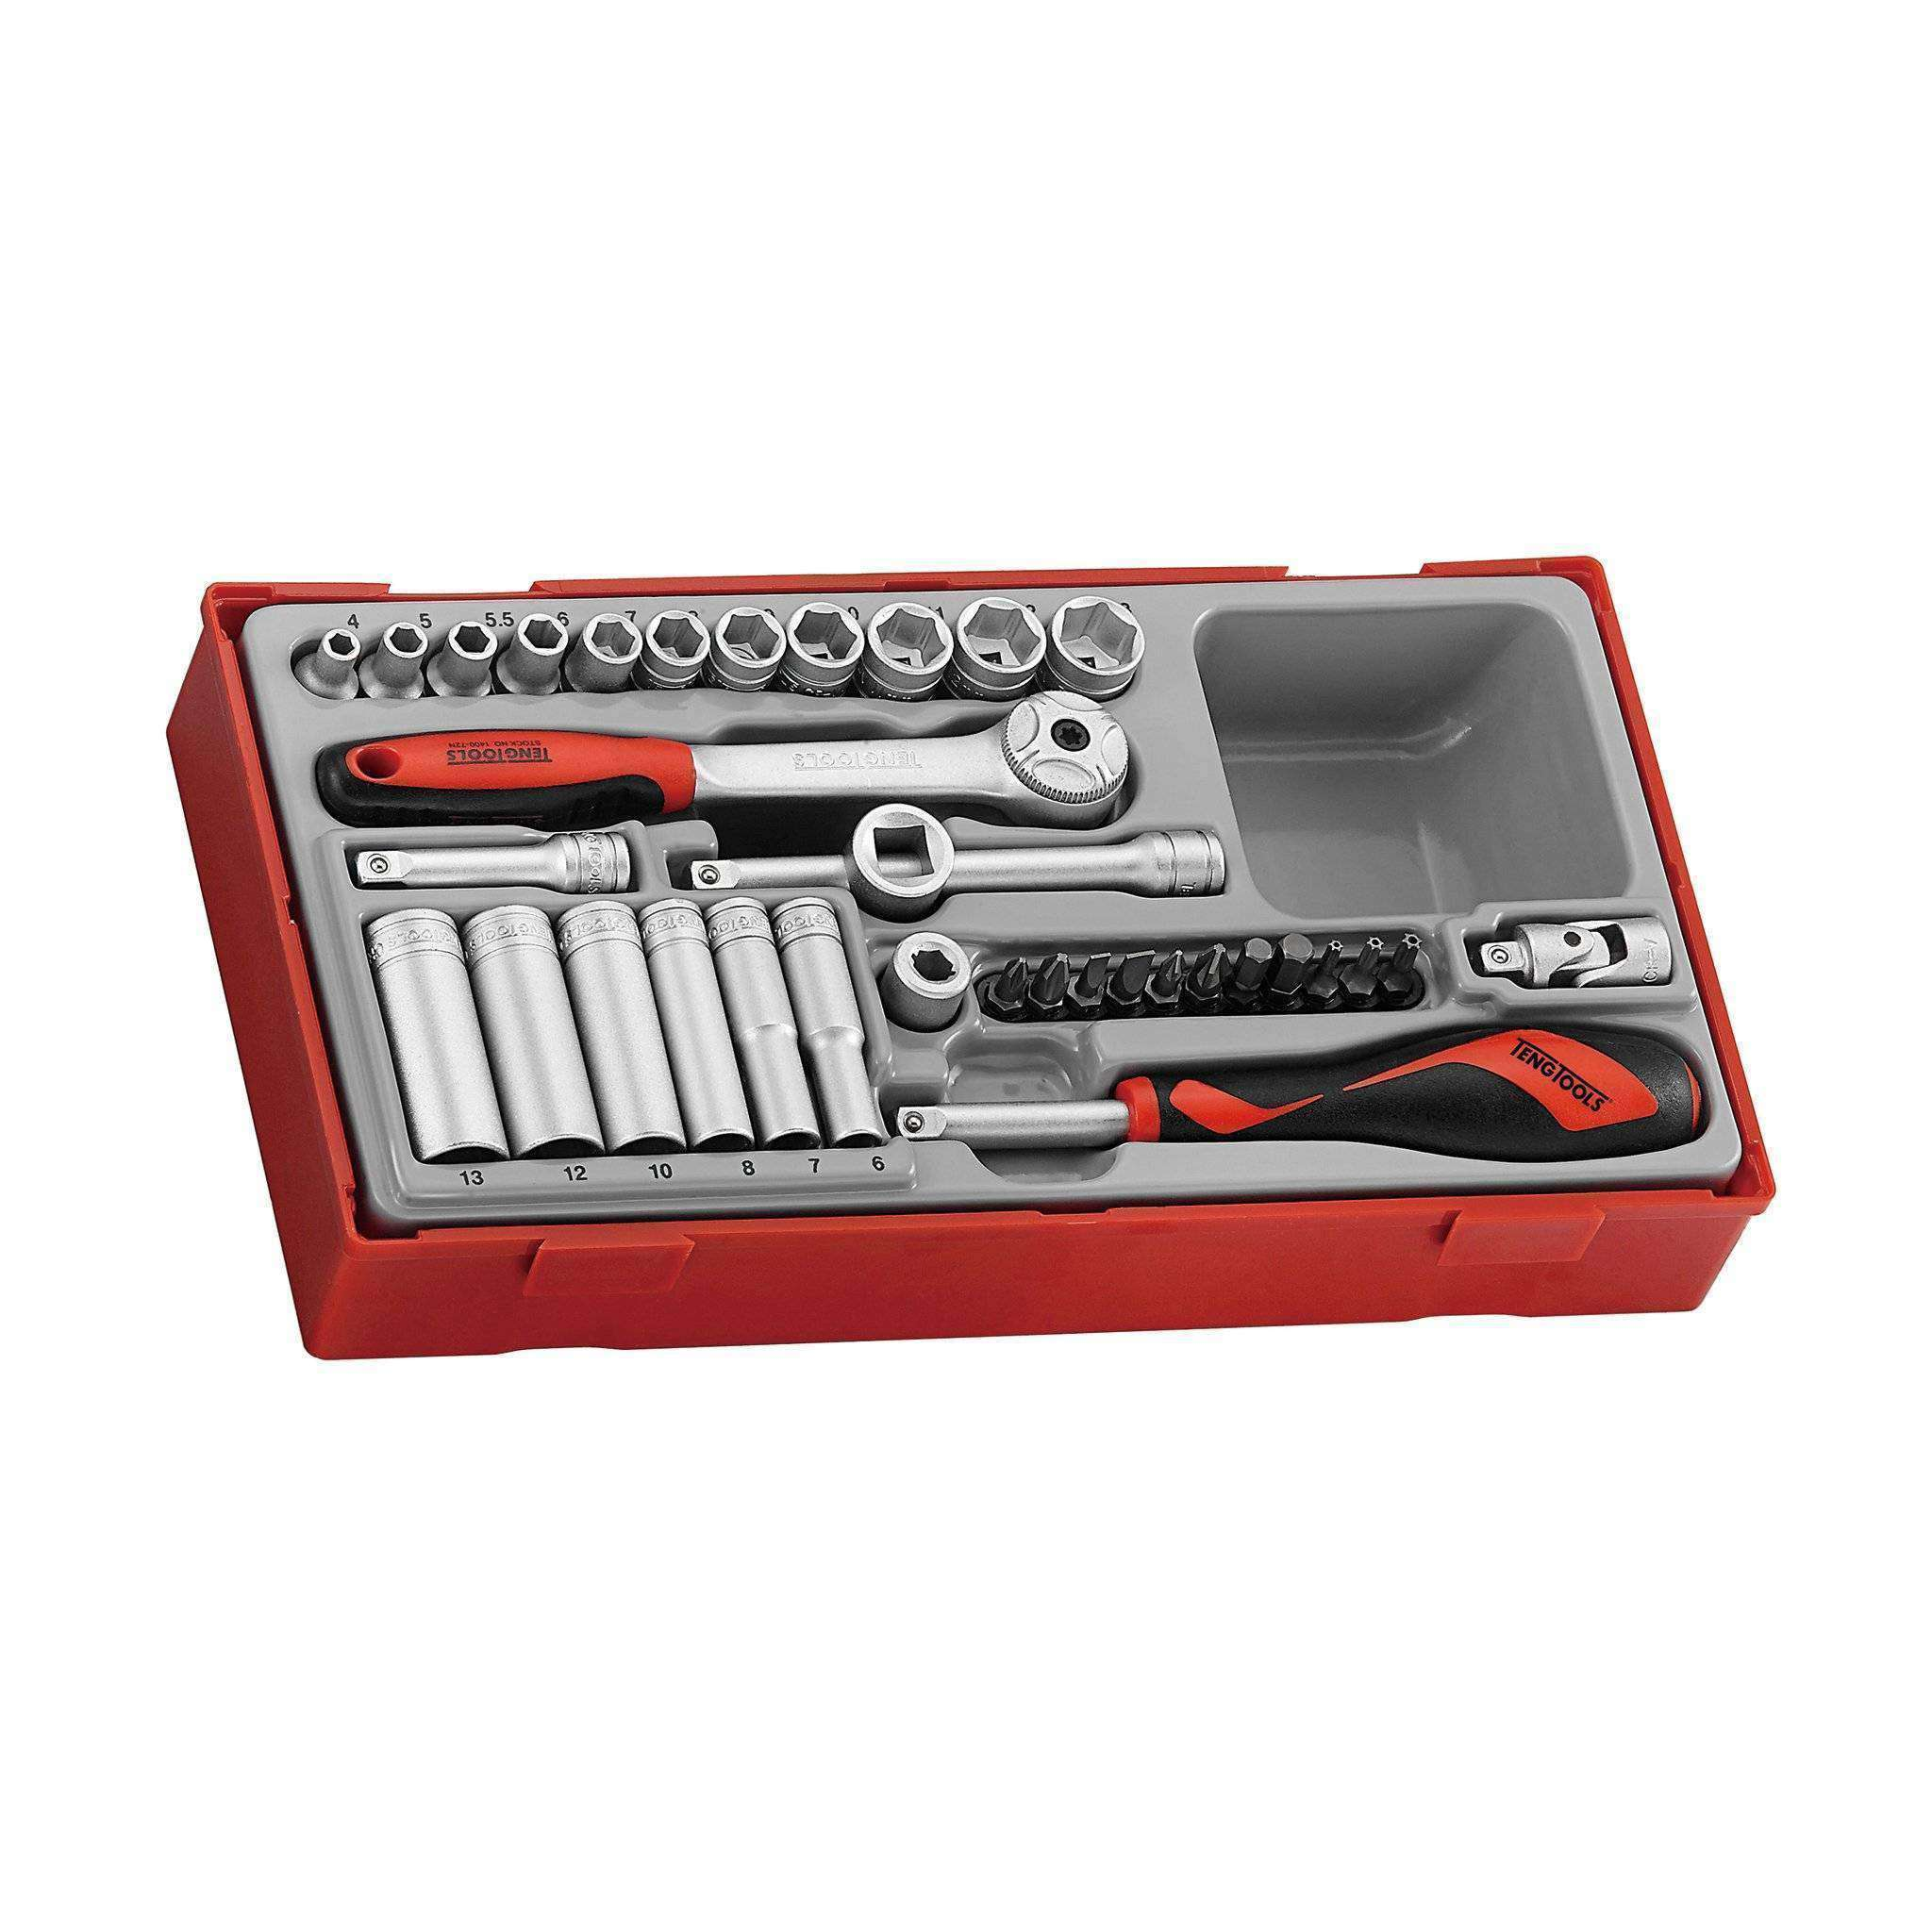 Teng Tools - 35 Piece 1/4 inch Drive Metric Socket Set - TEN-O-TT1435 - Teng Tools USA